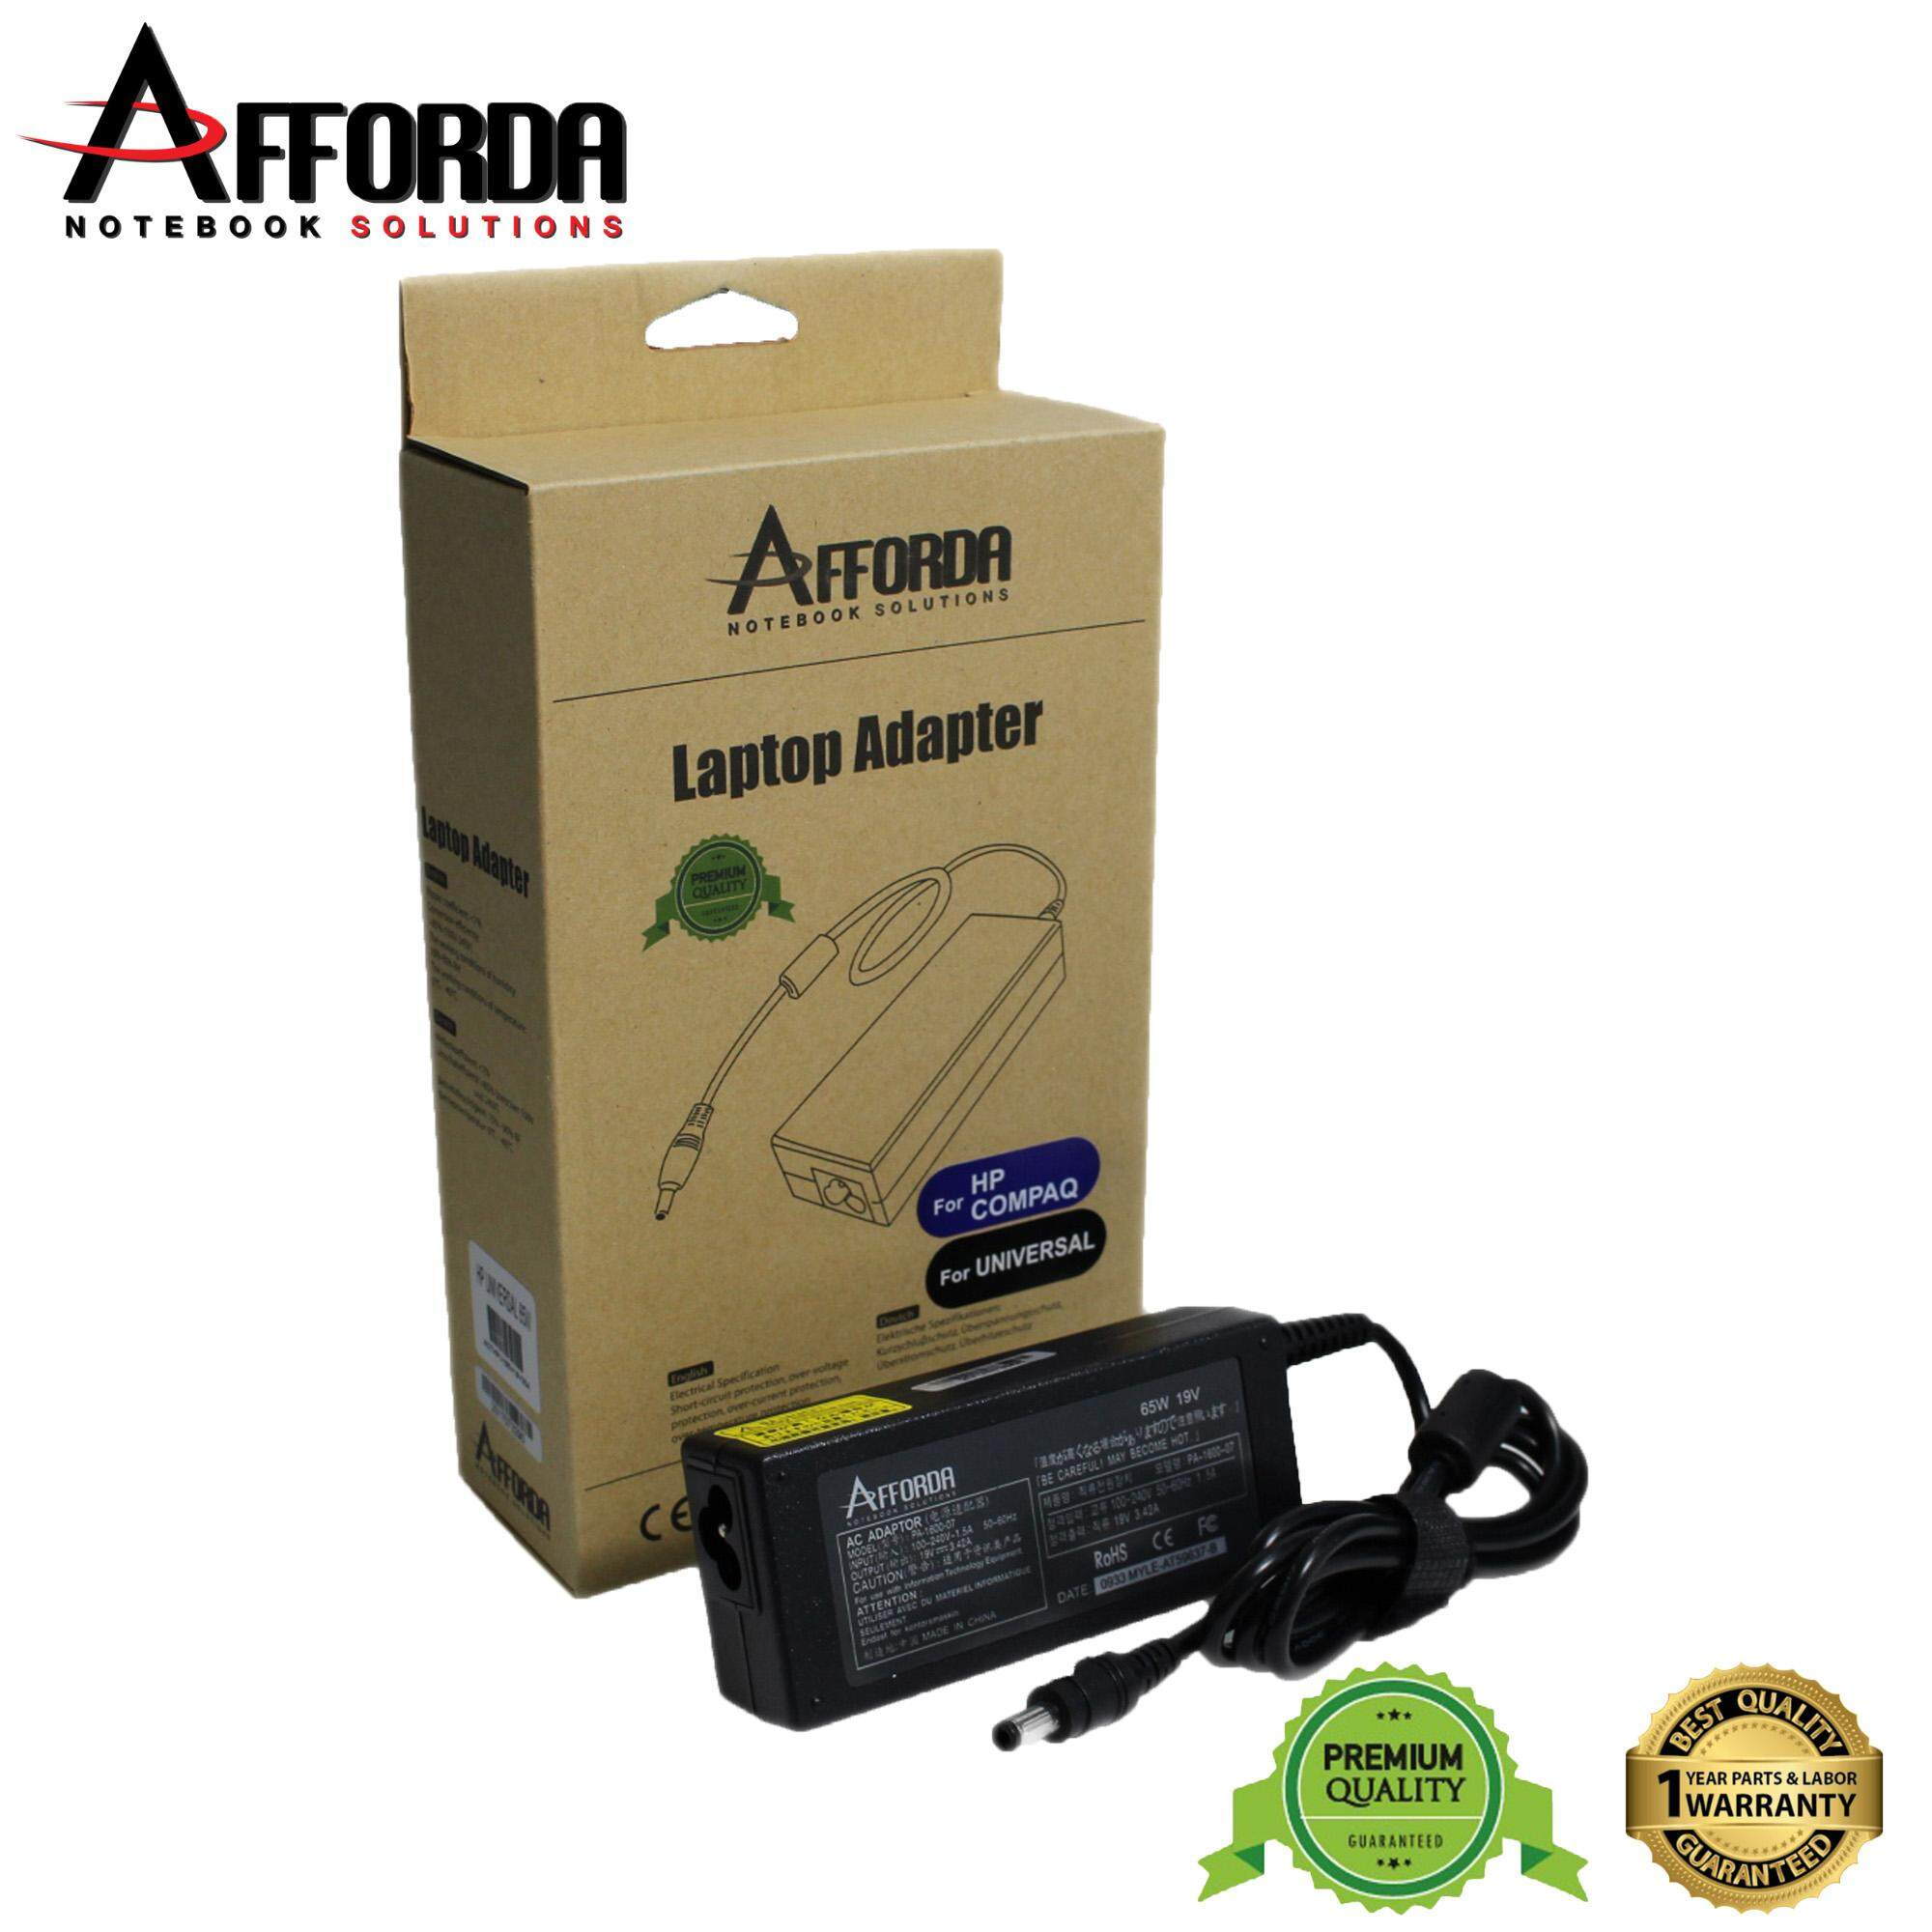 AFFORDA HP UNIVERSAL ADAPTER 65W FOR HP NOTEBOOK